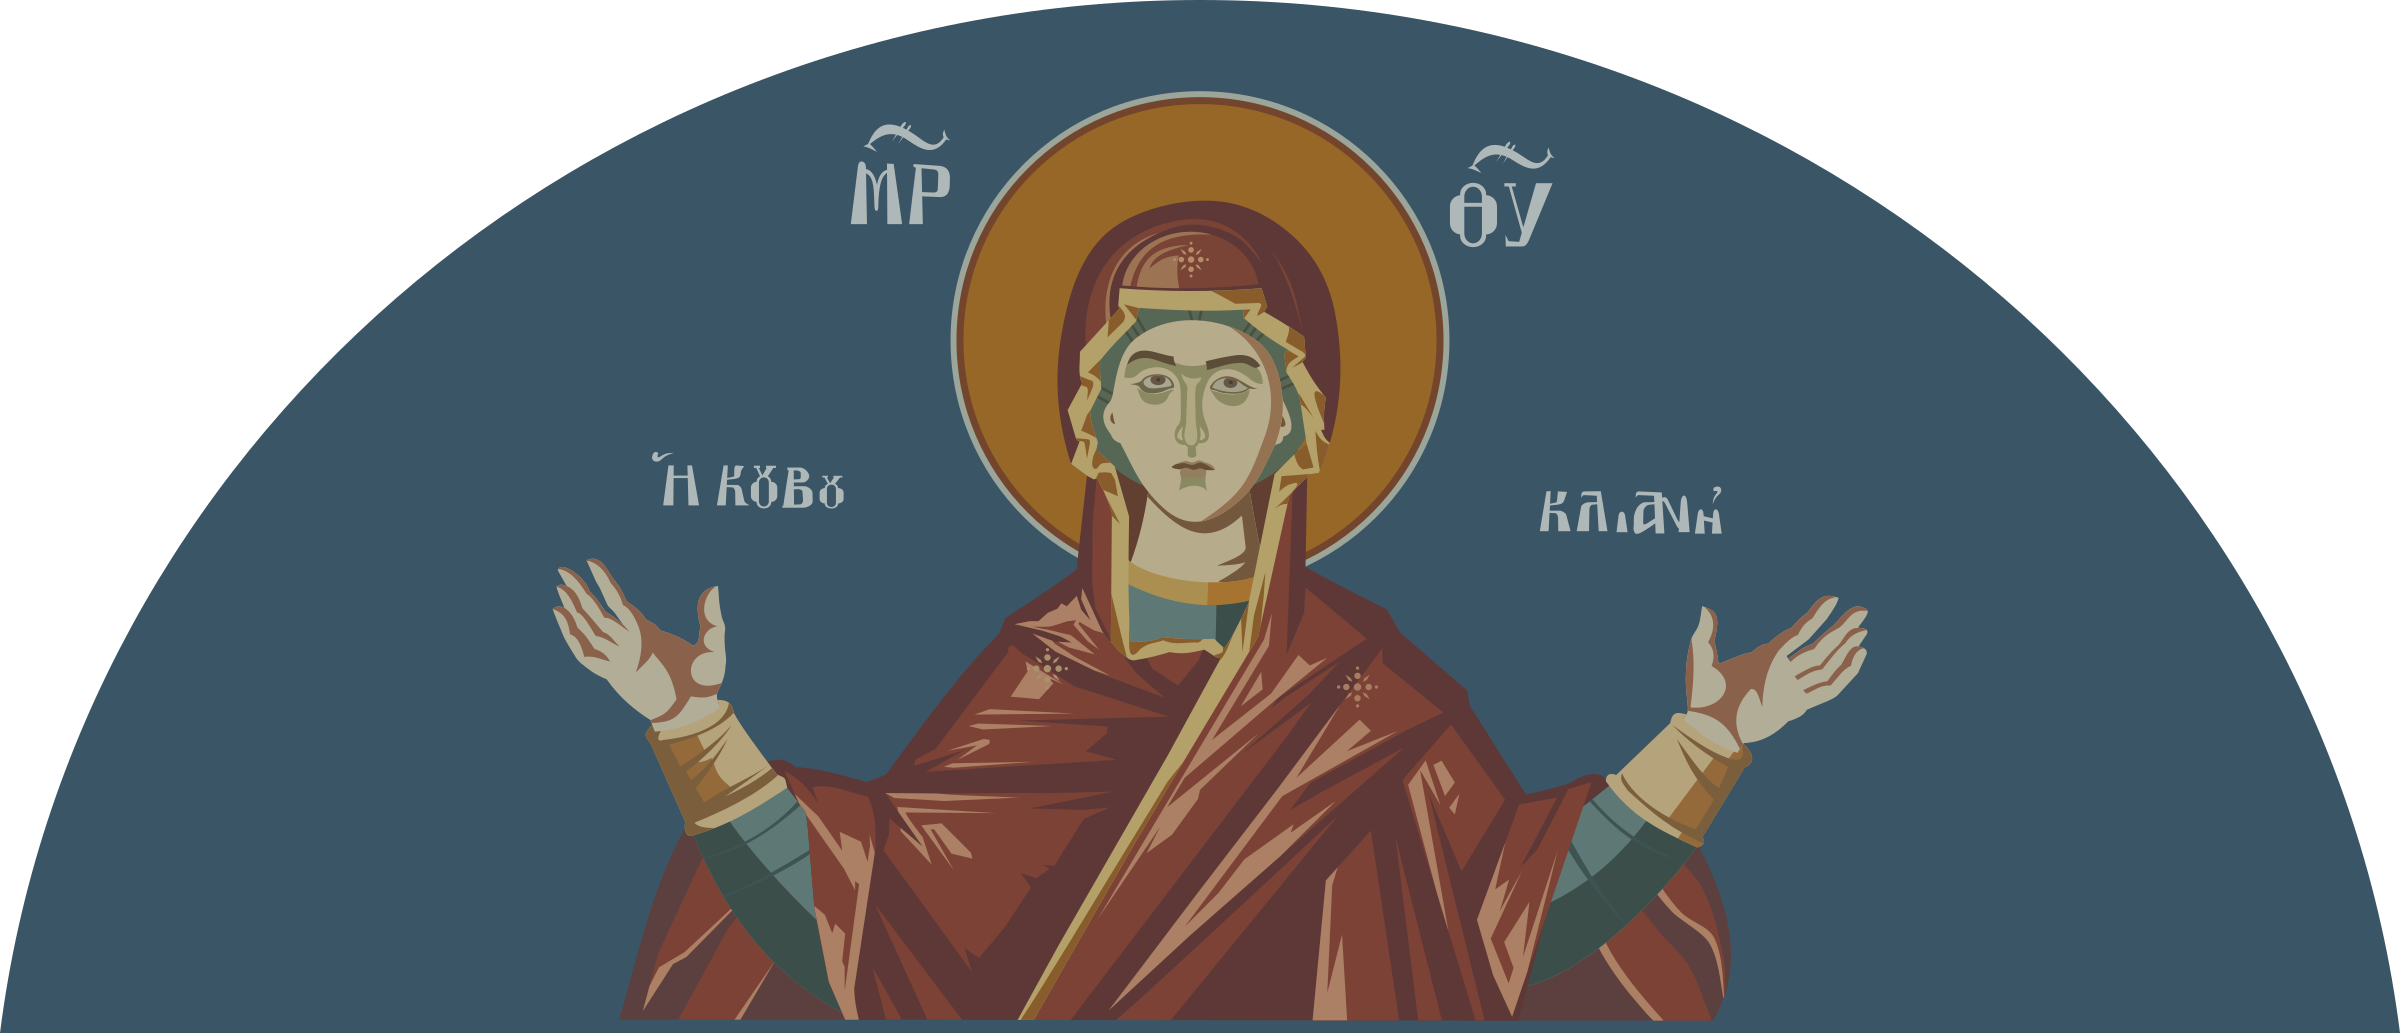 Greek icon by rones